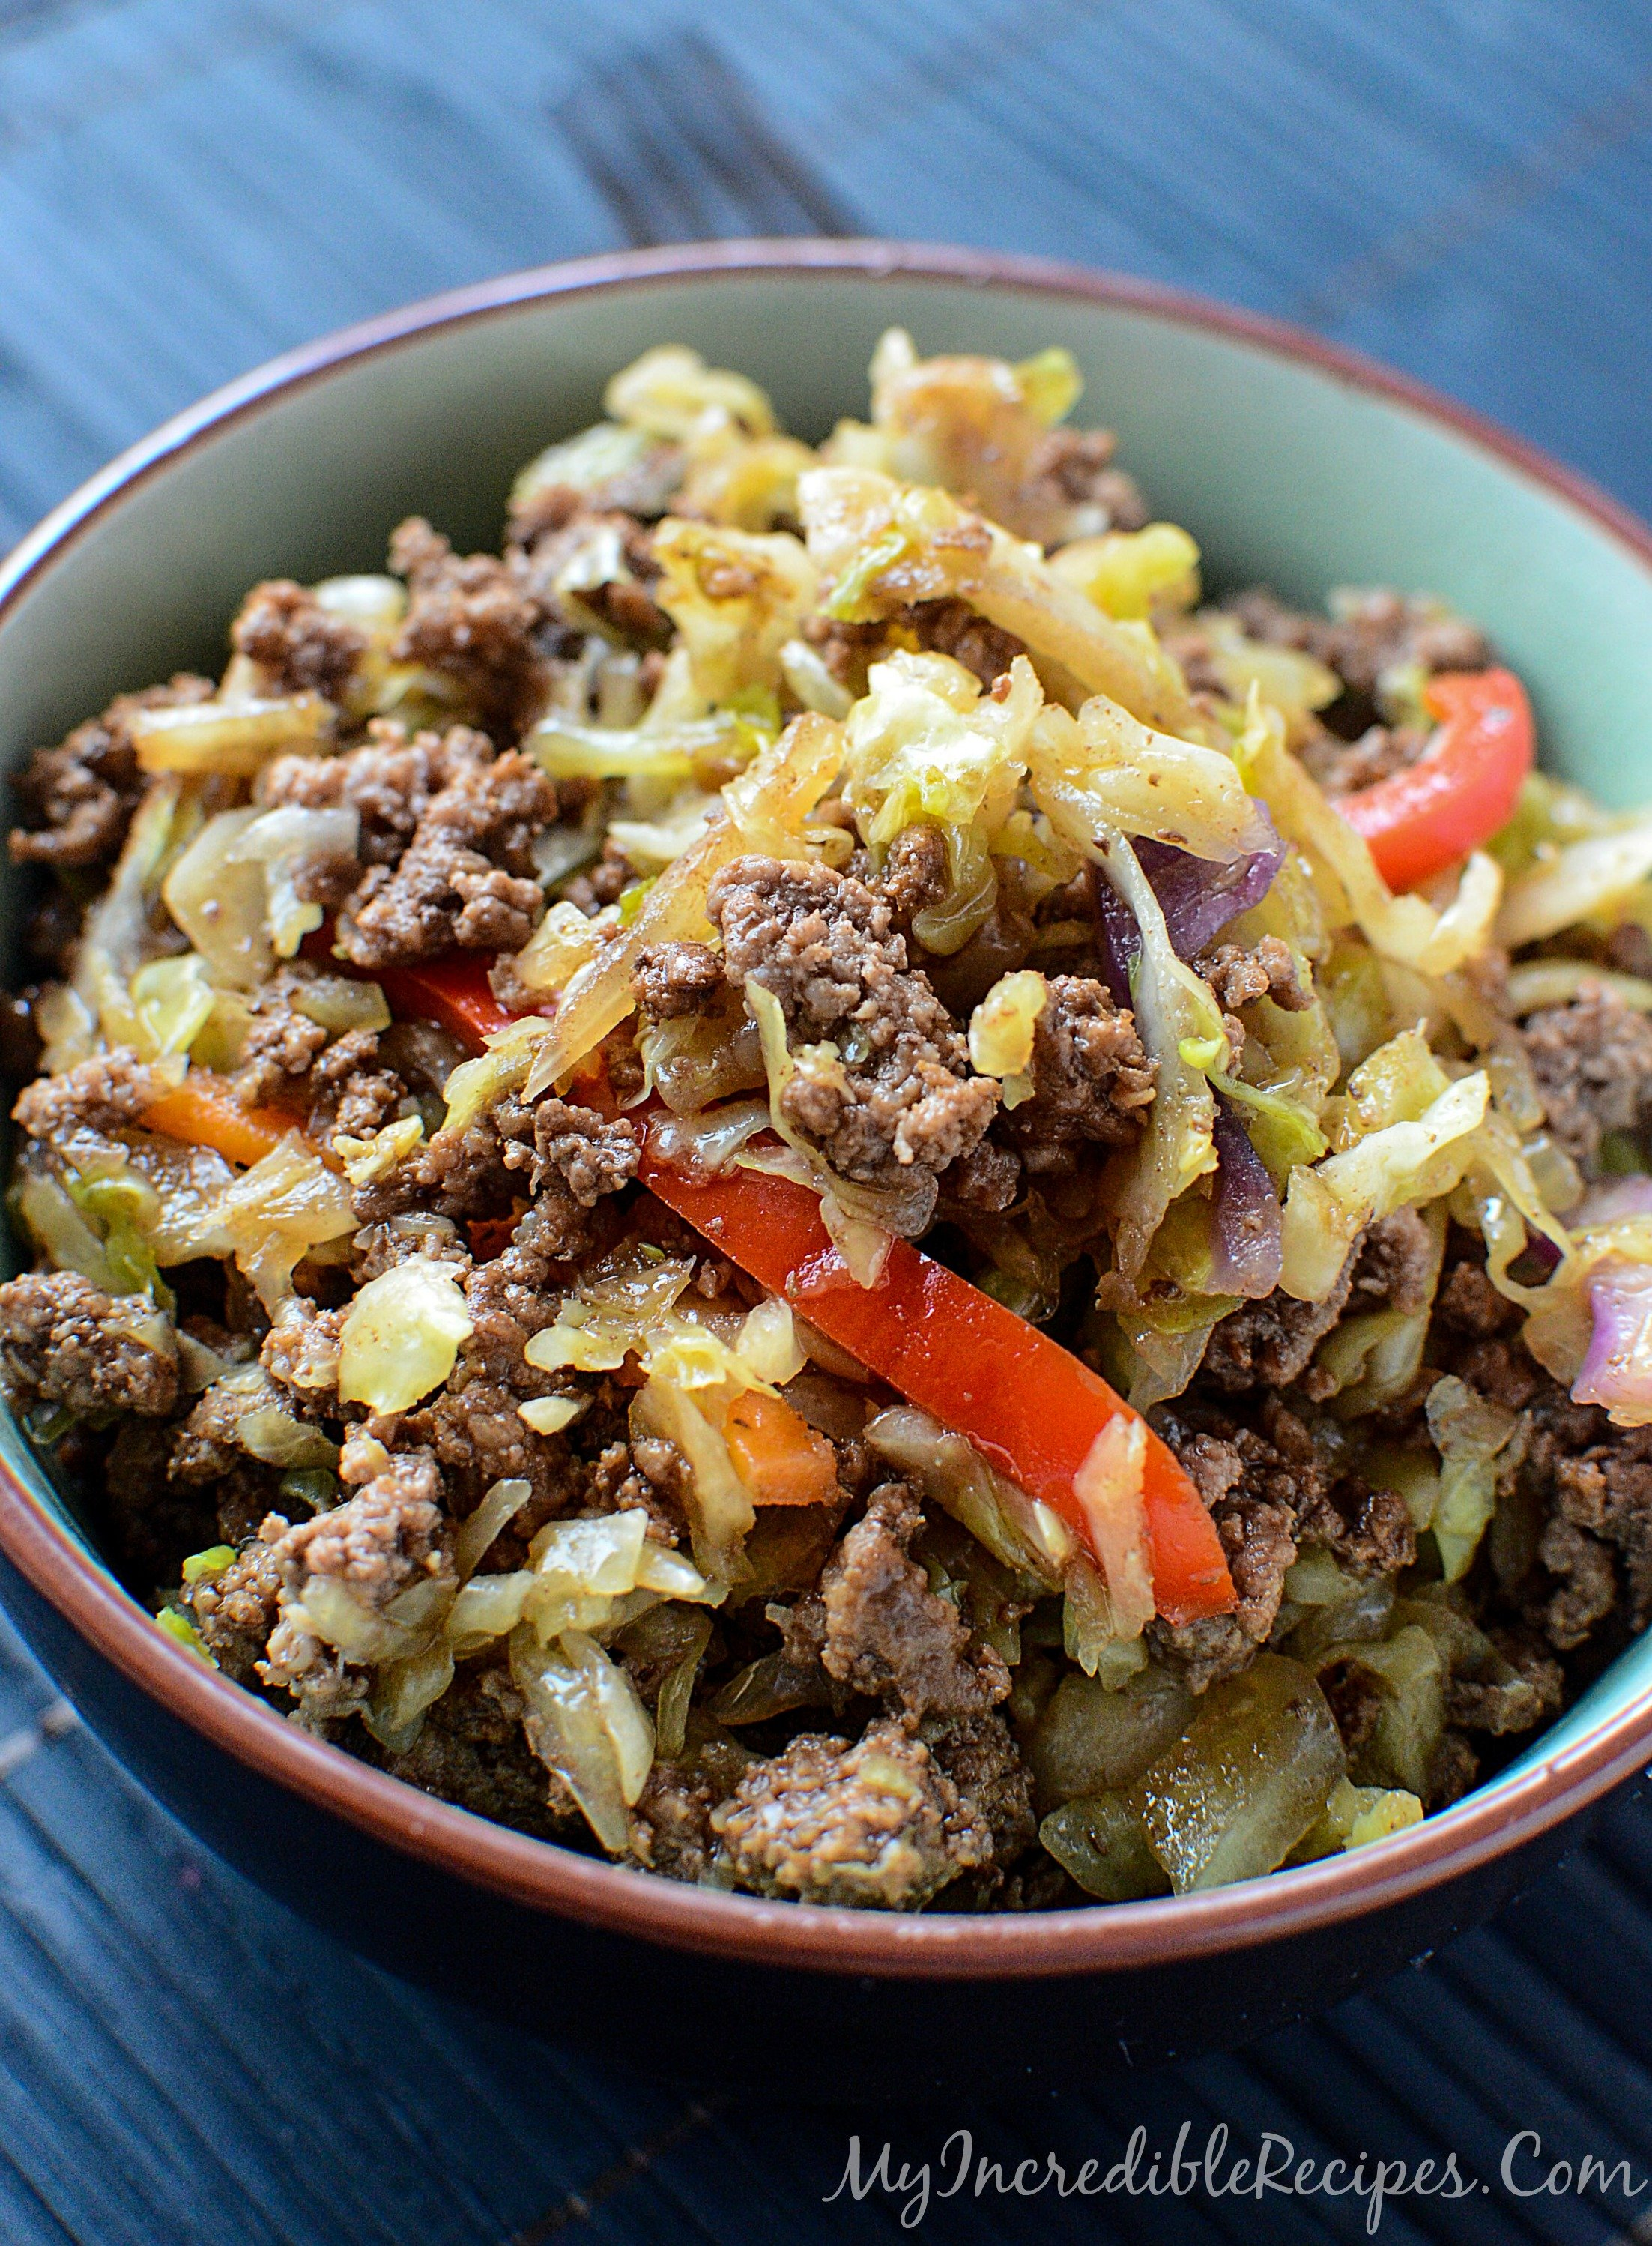 Easy Asian Beef Cabbage Stir Fry